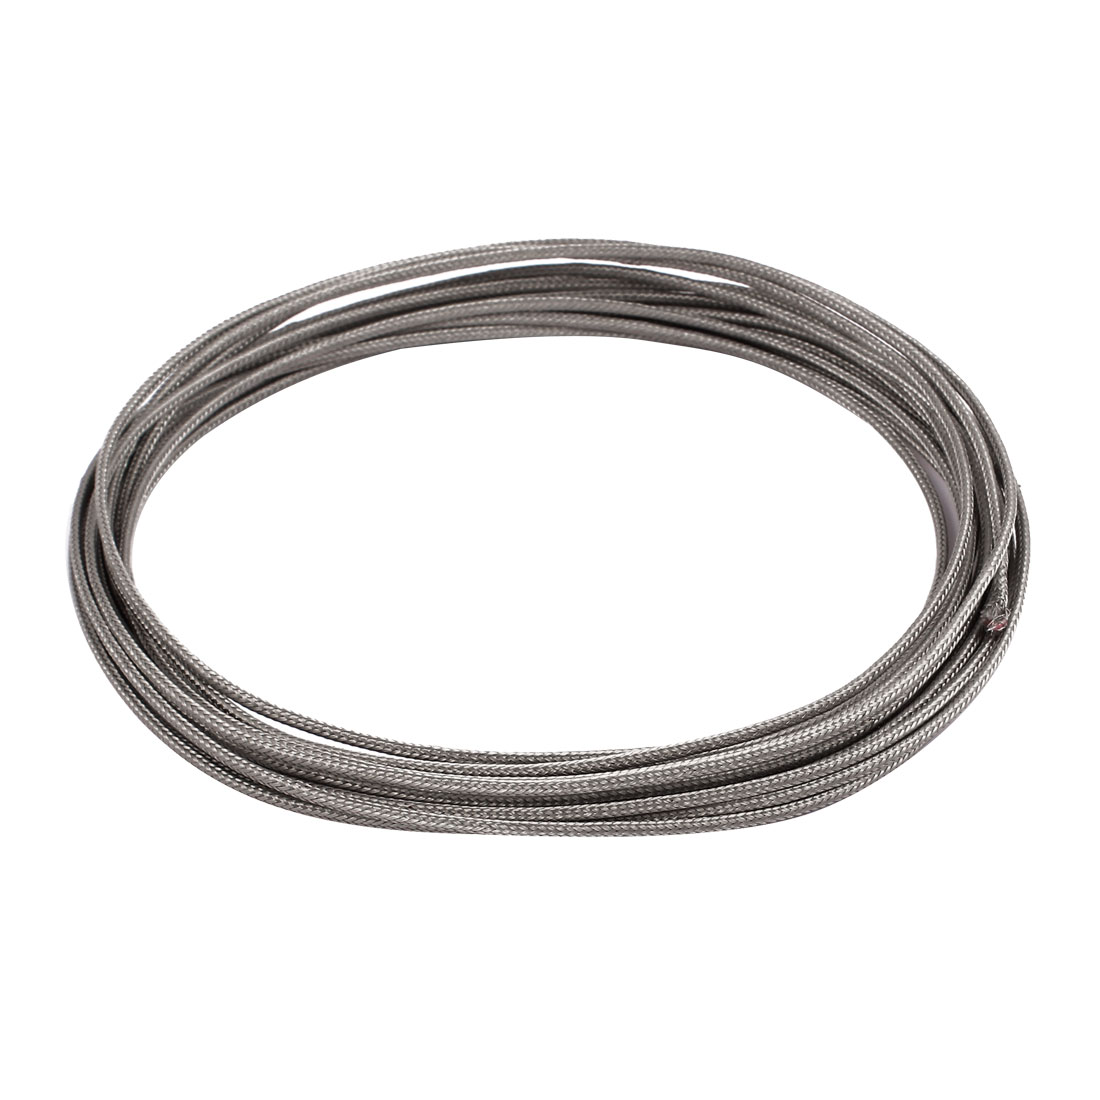 6.6 Meter 0.4mm Width Silver Tone Metal K Type Thermocouple Extension Wire